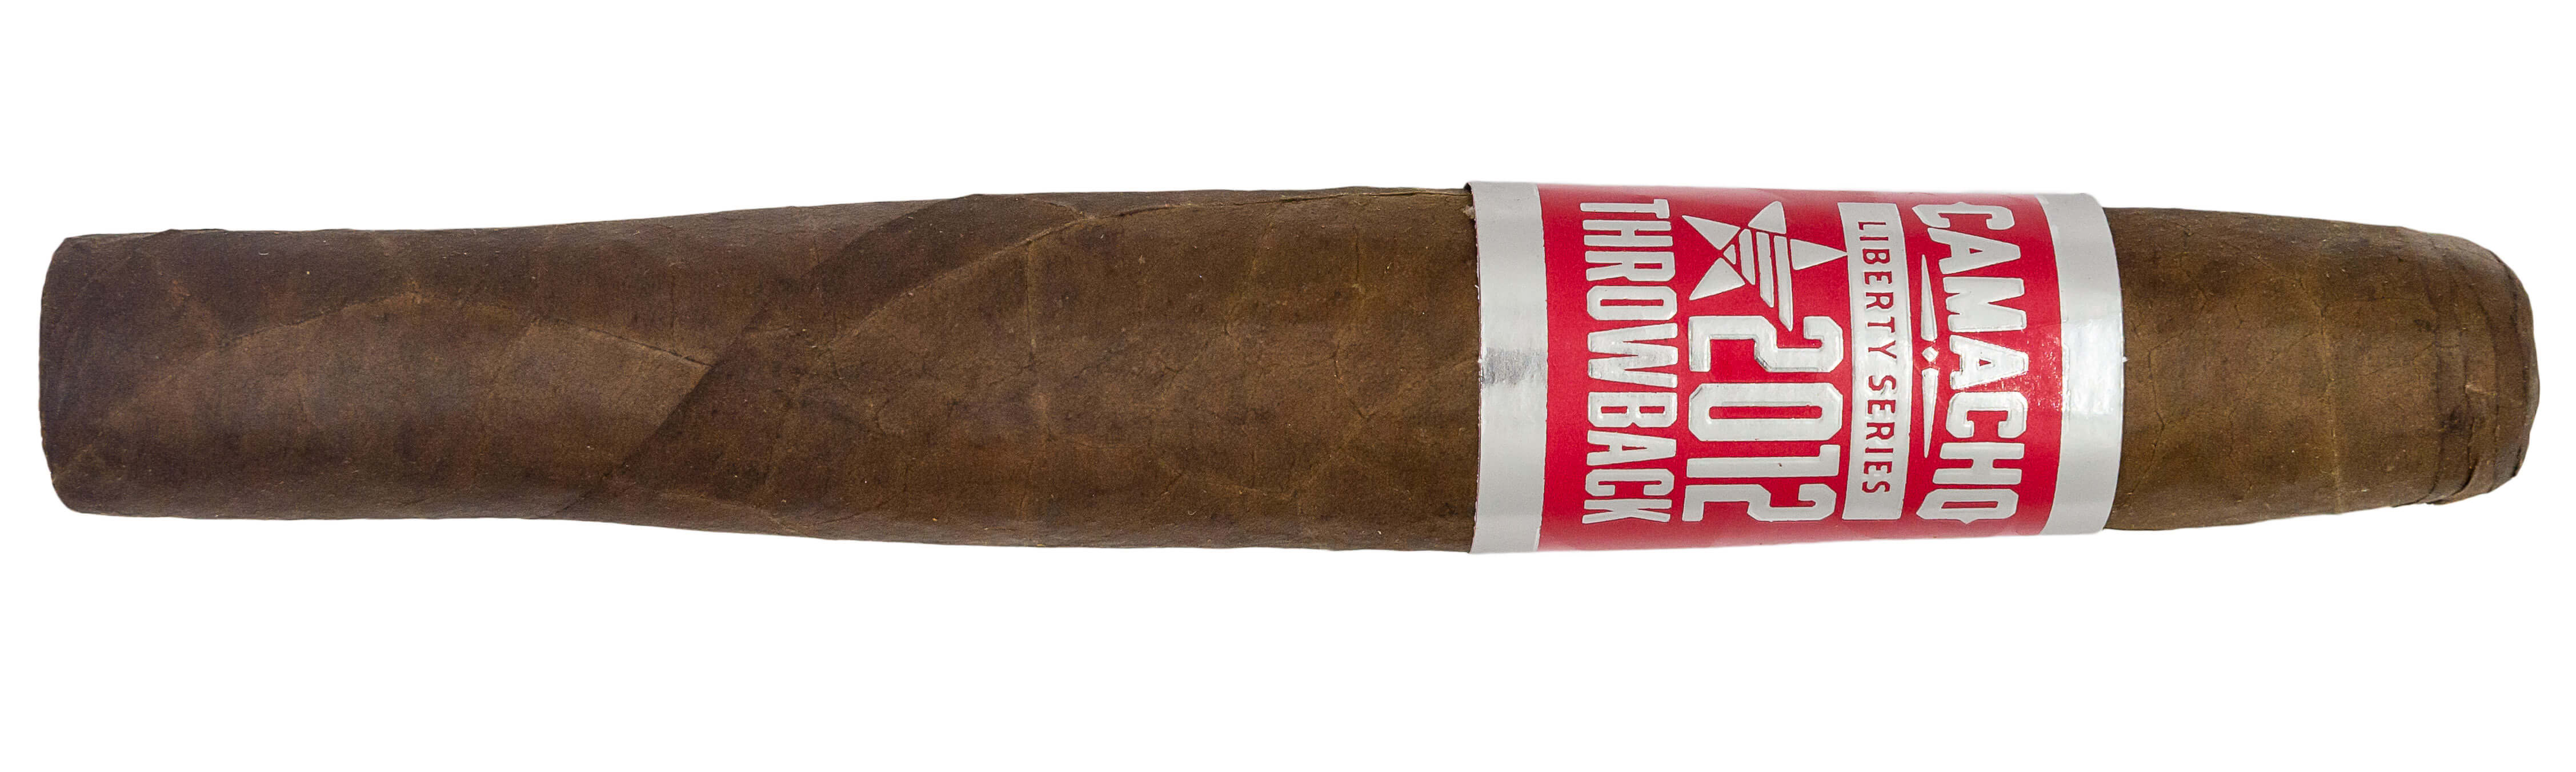 Blind Cigar Review: Camacho | Liberty 2012 Throwback